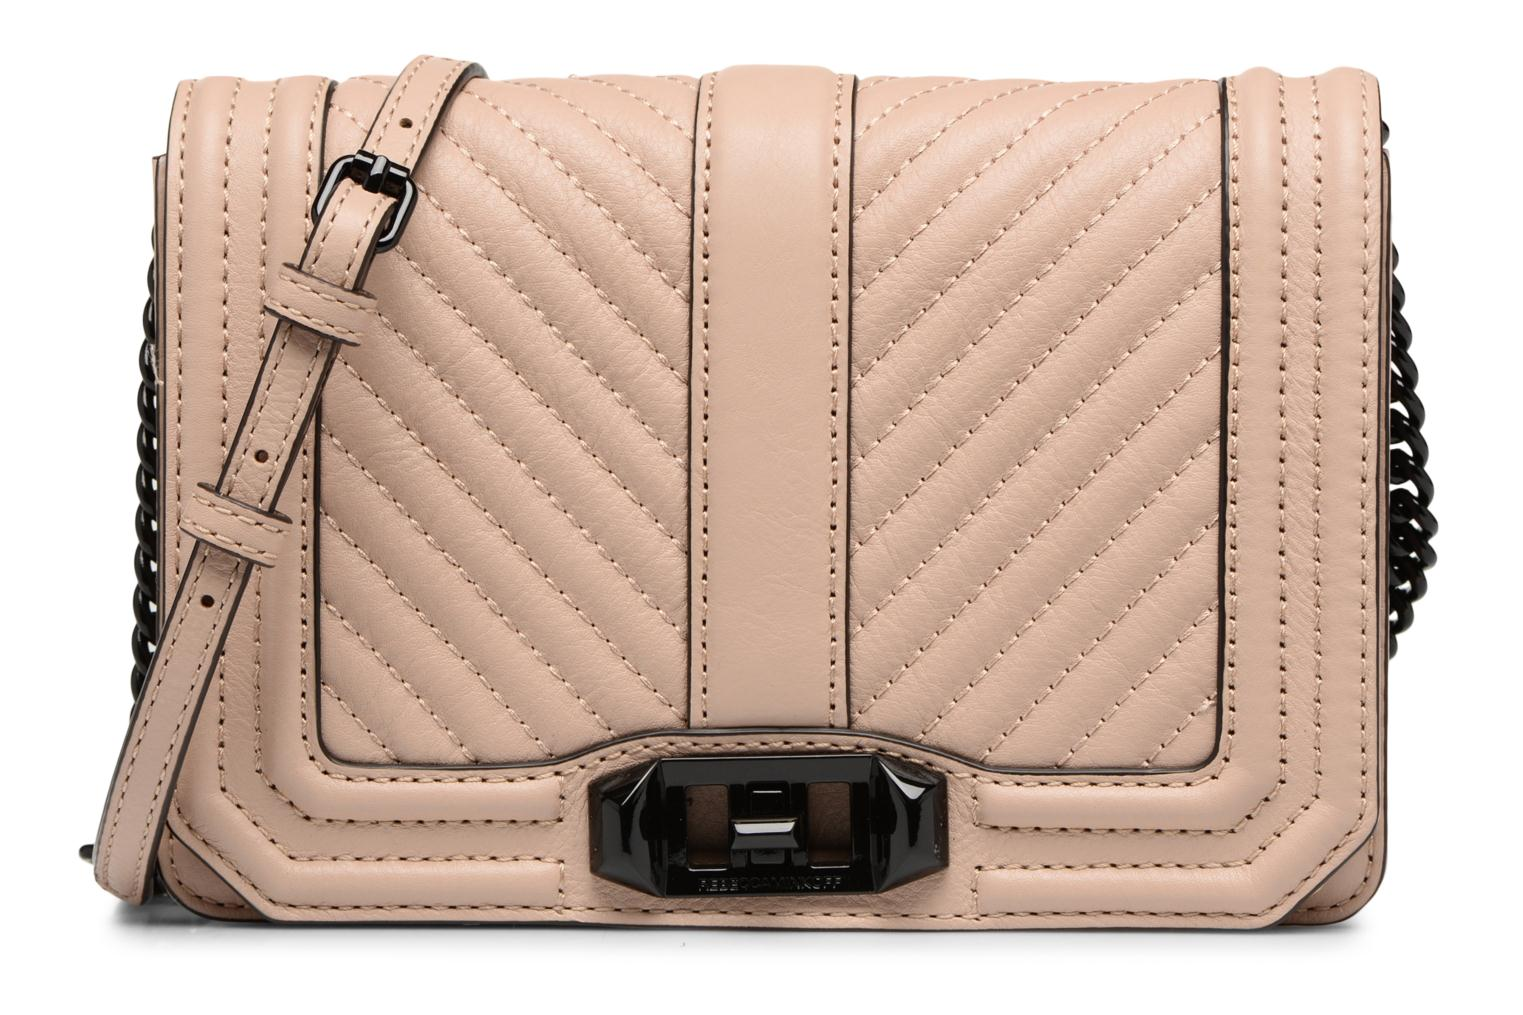 CHEVRON QUILTED SMALL LOVE CRO NUDE 270